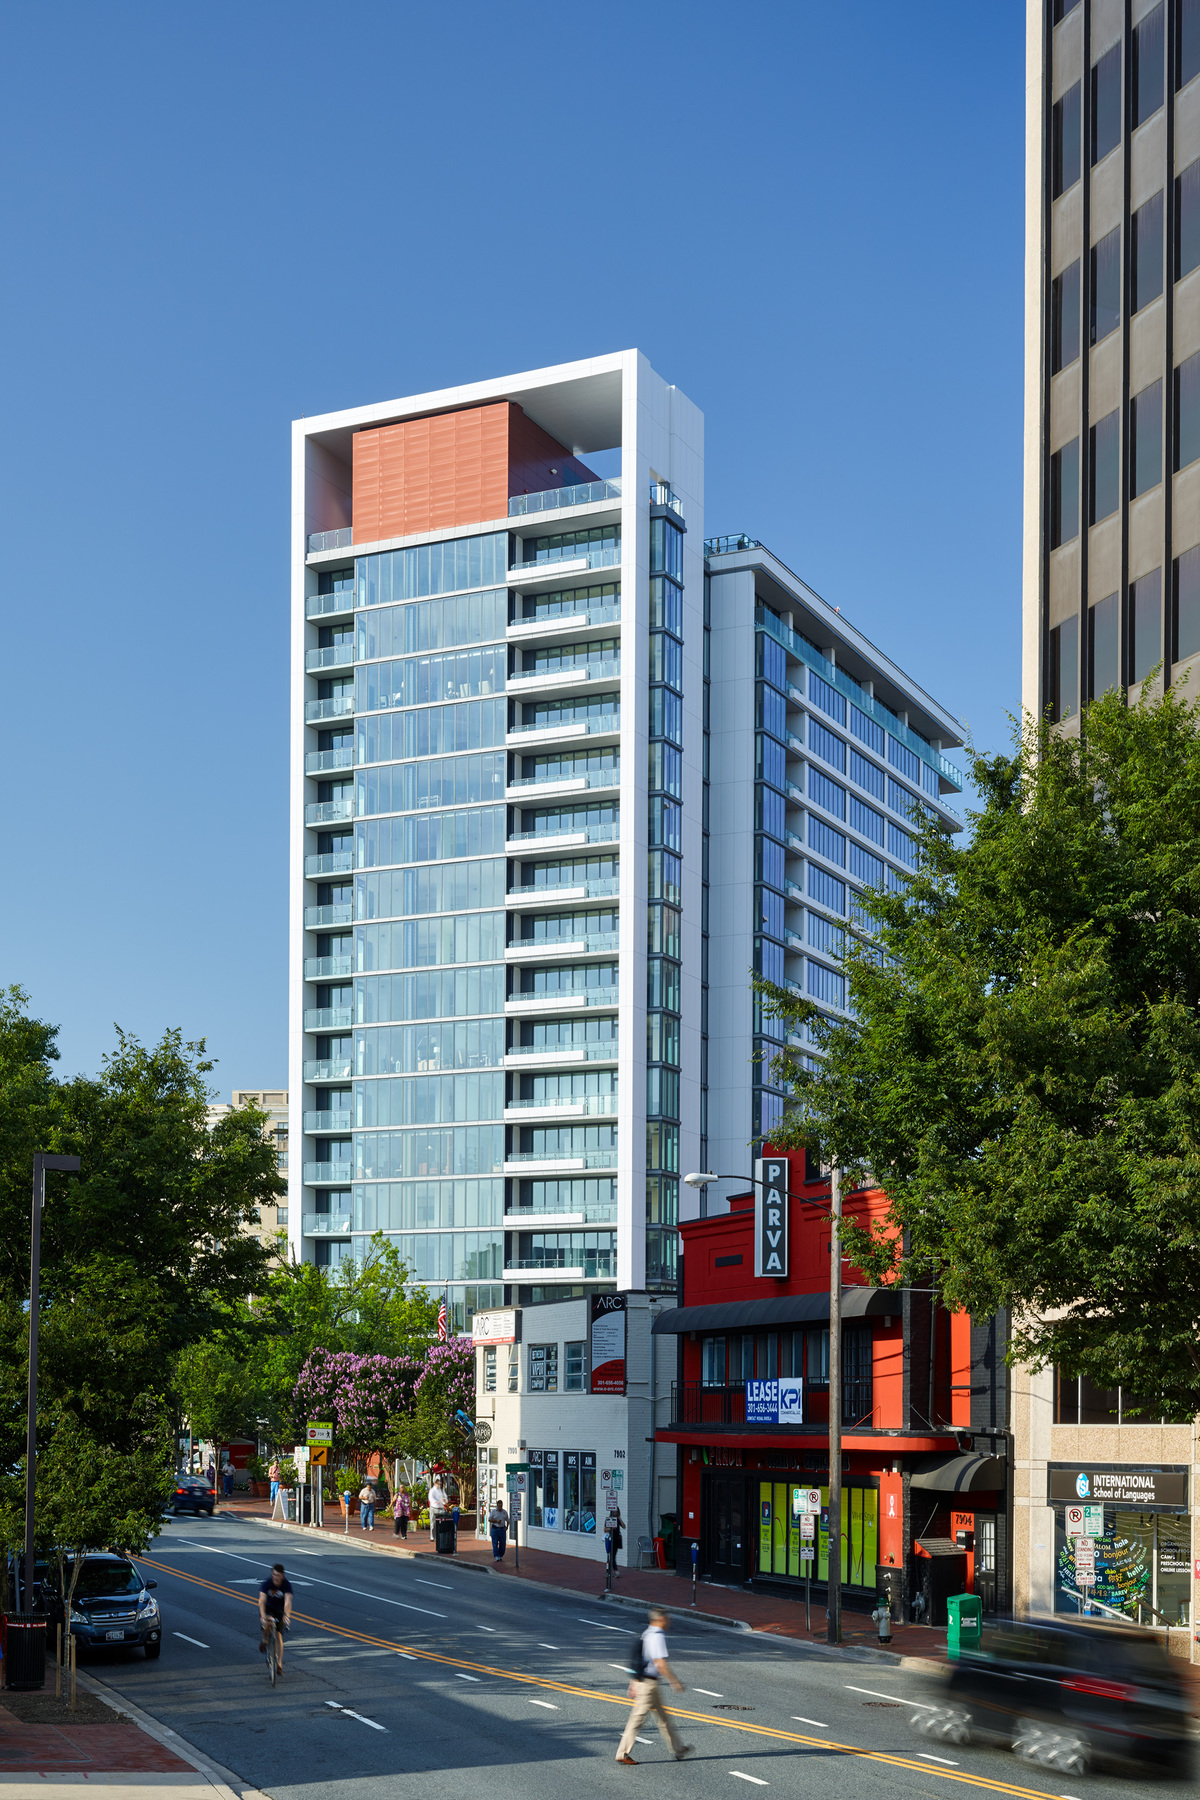 Additional photo for property listing at 7770 Norfolk Avenue 1207, Bethesda 7770 Norfolk Ave 1207 贝塞斯达, 马里兰州 20814 美国